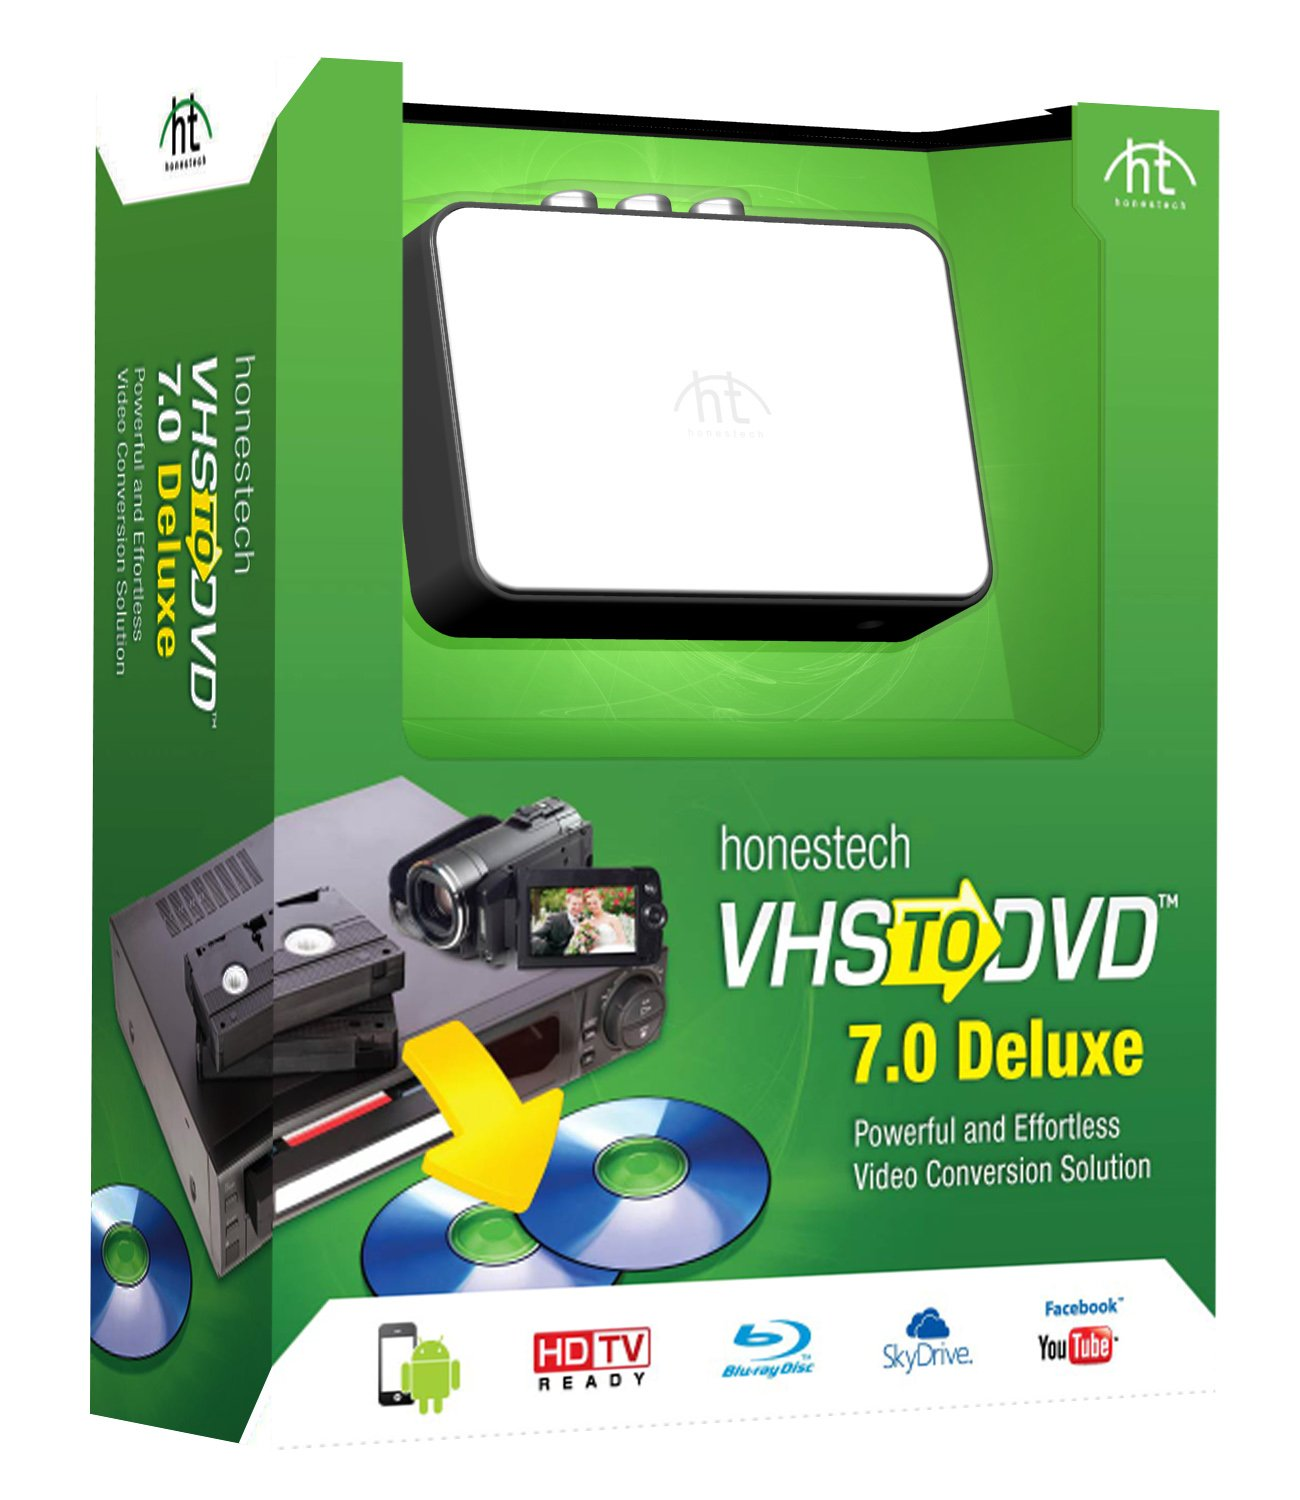 Amazon.com: VHS to DVD 7.0 Deluxe